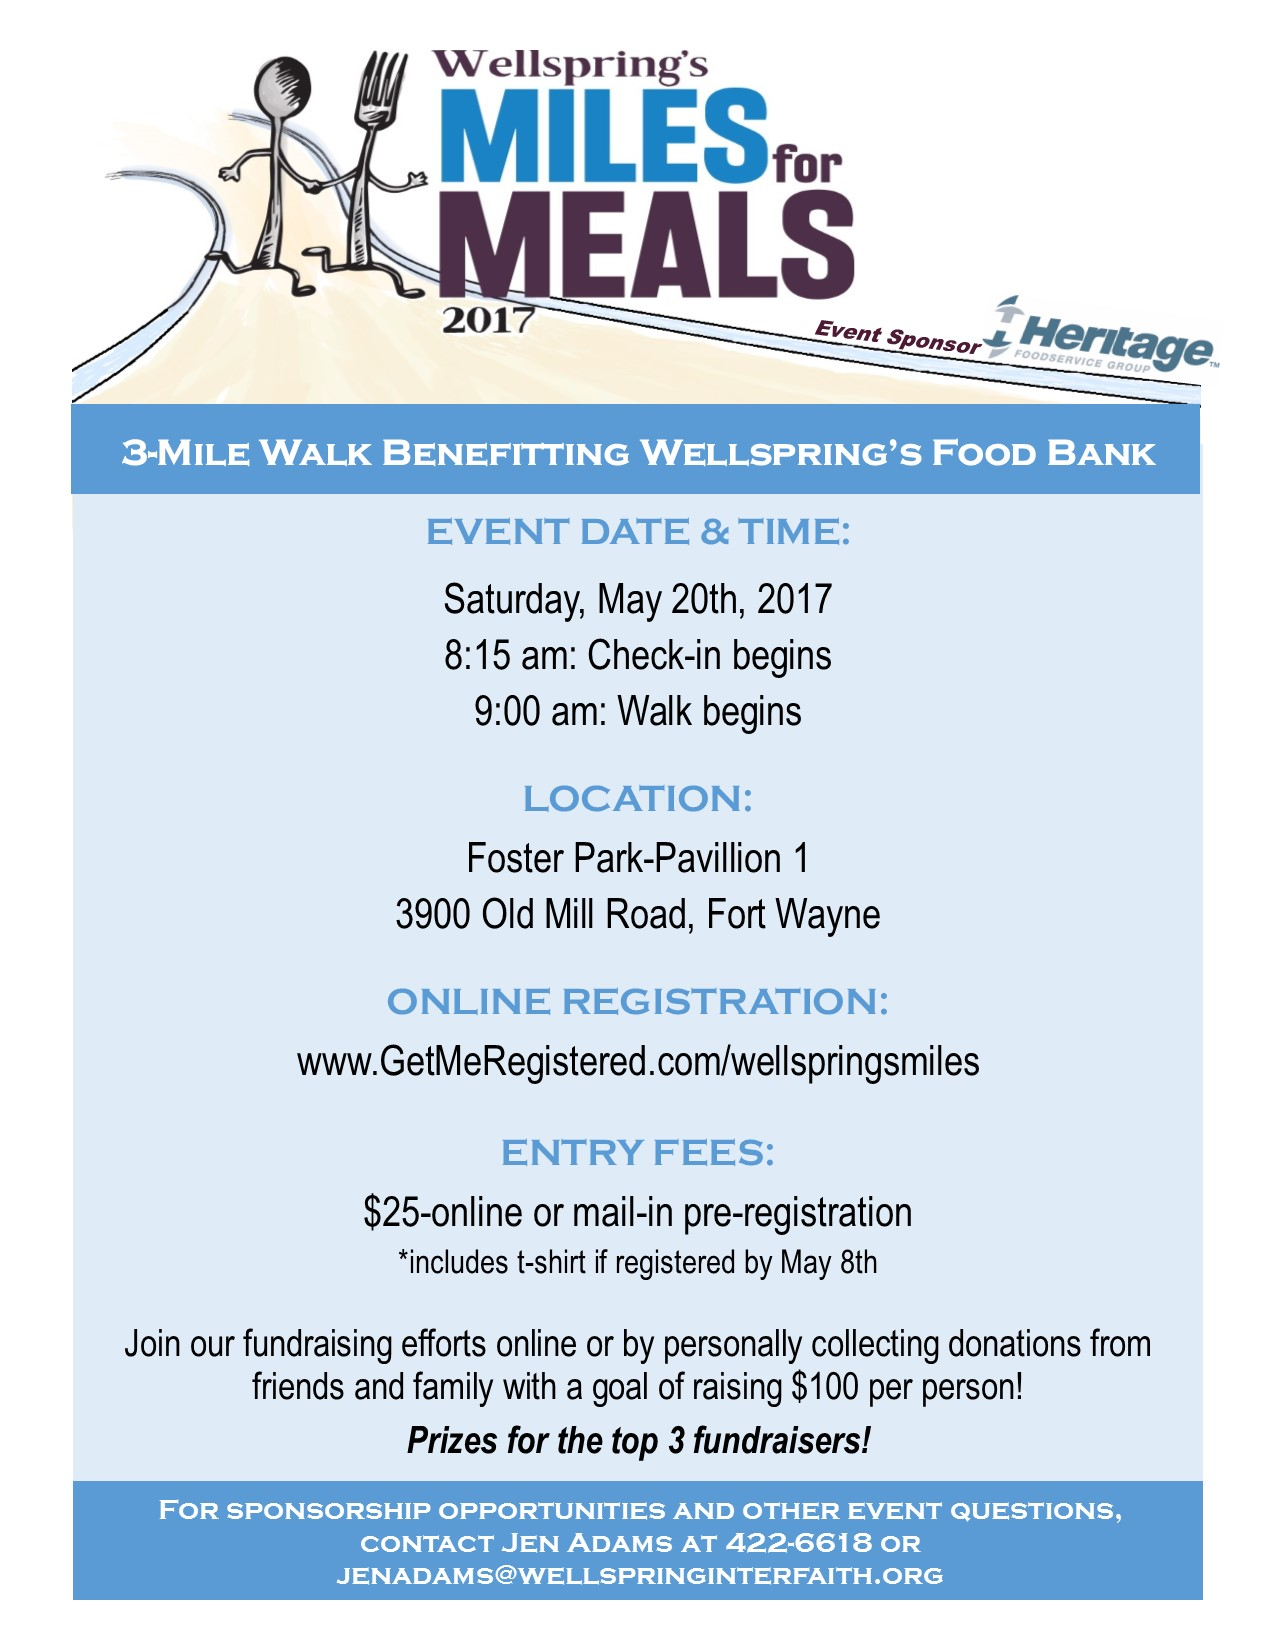 2017 Miles for Meals Flyer 1